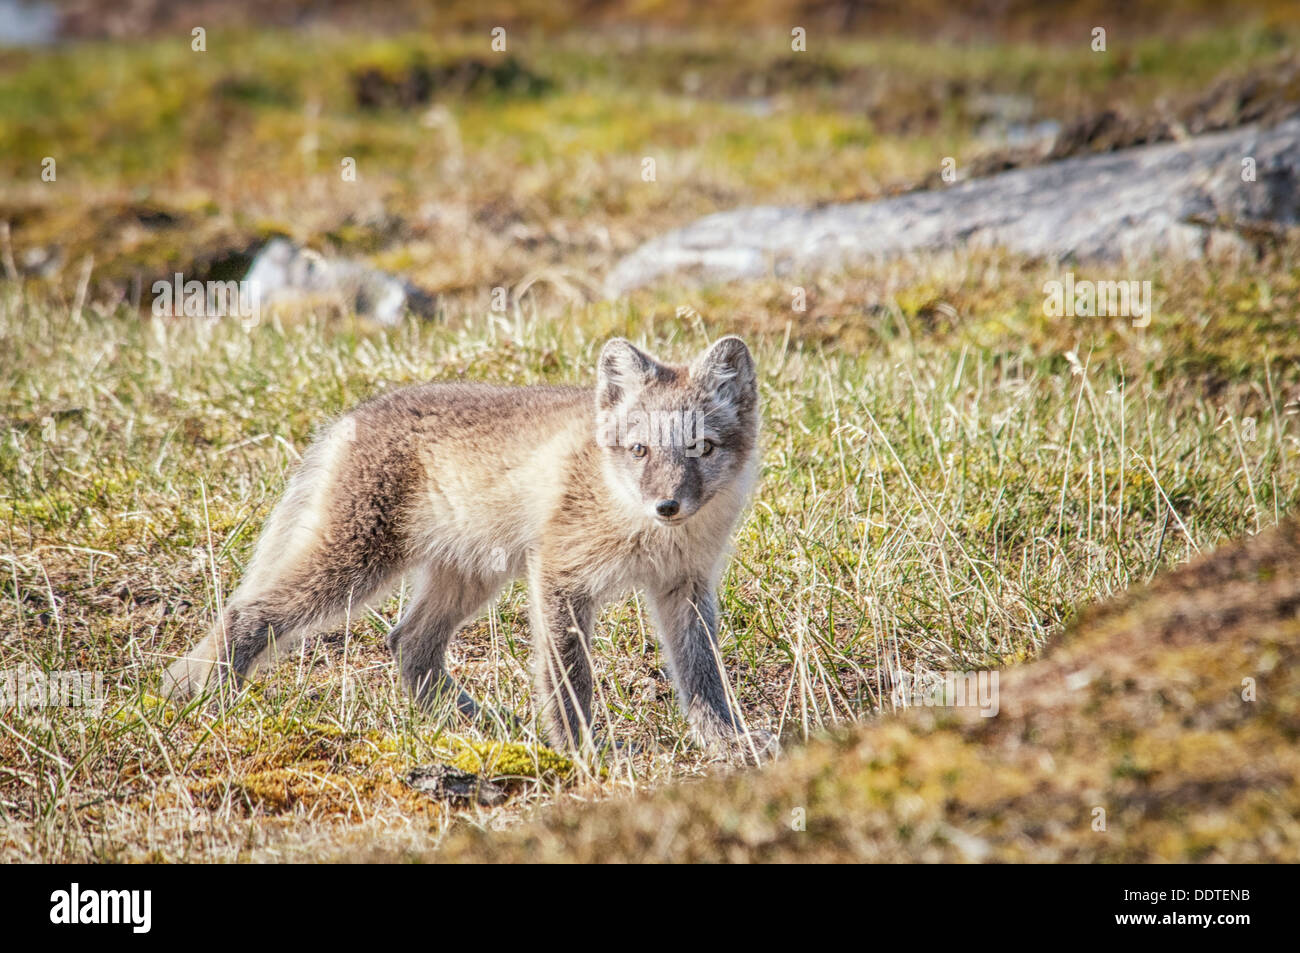 One Arctic Fox Pup, Vulpes lagopus. in summer pelage, standing in the tundra, Alkehornet, Spitsbergen, Svalbard, - Stock Image